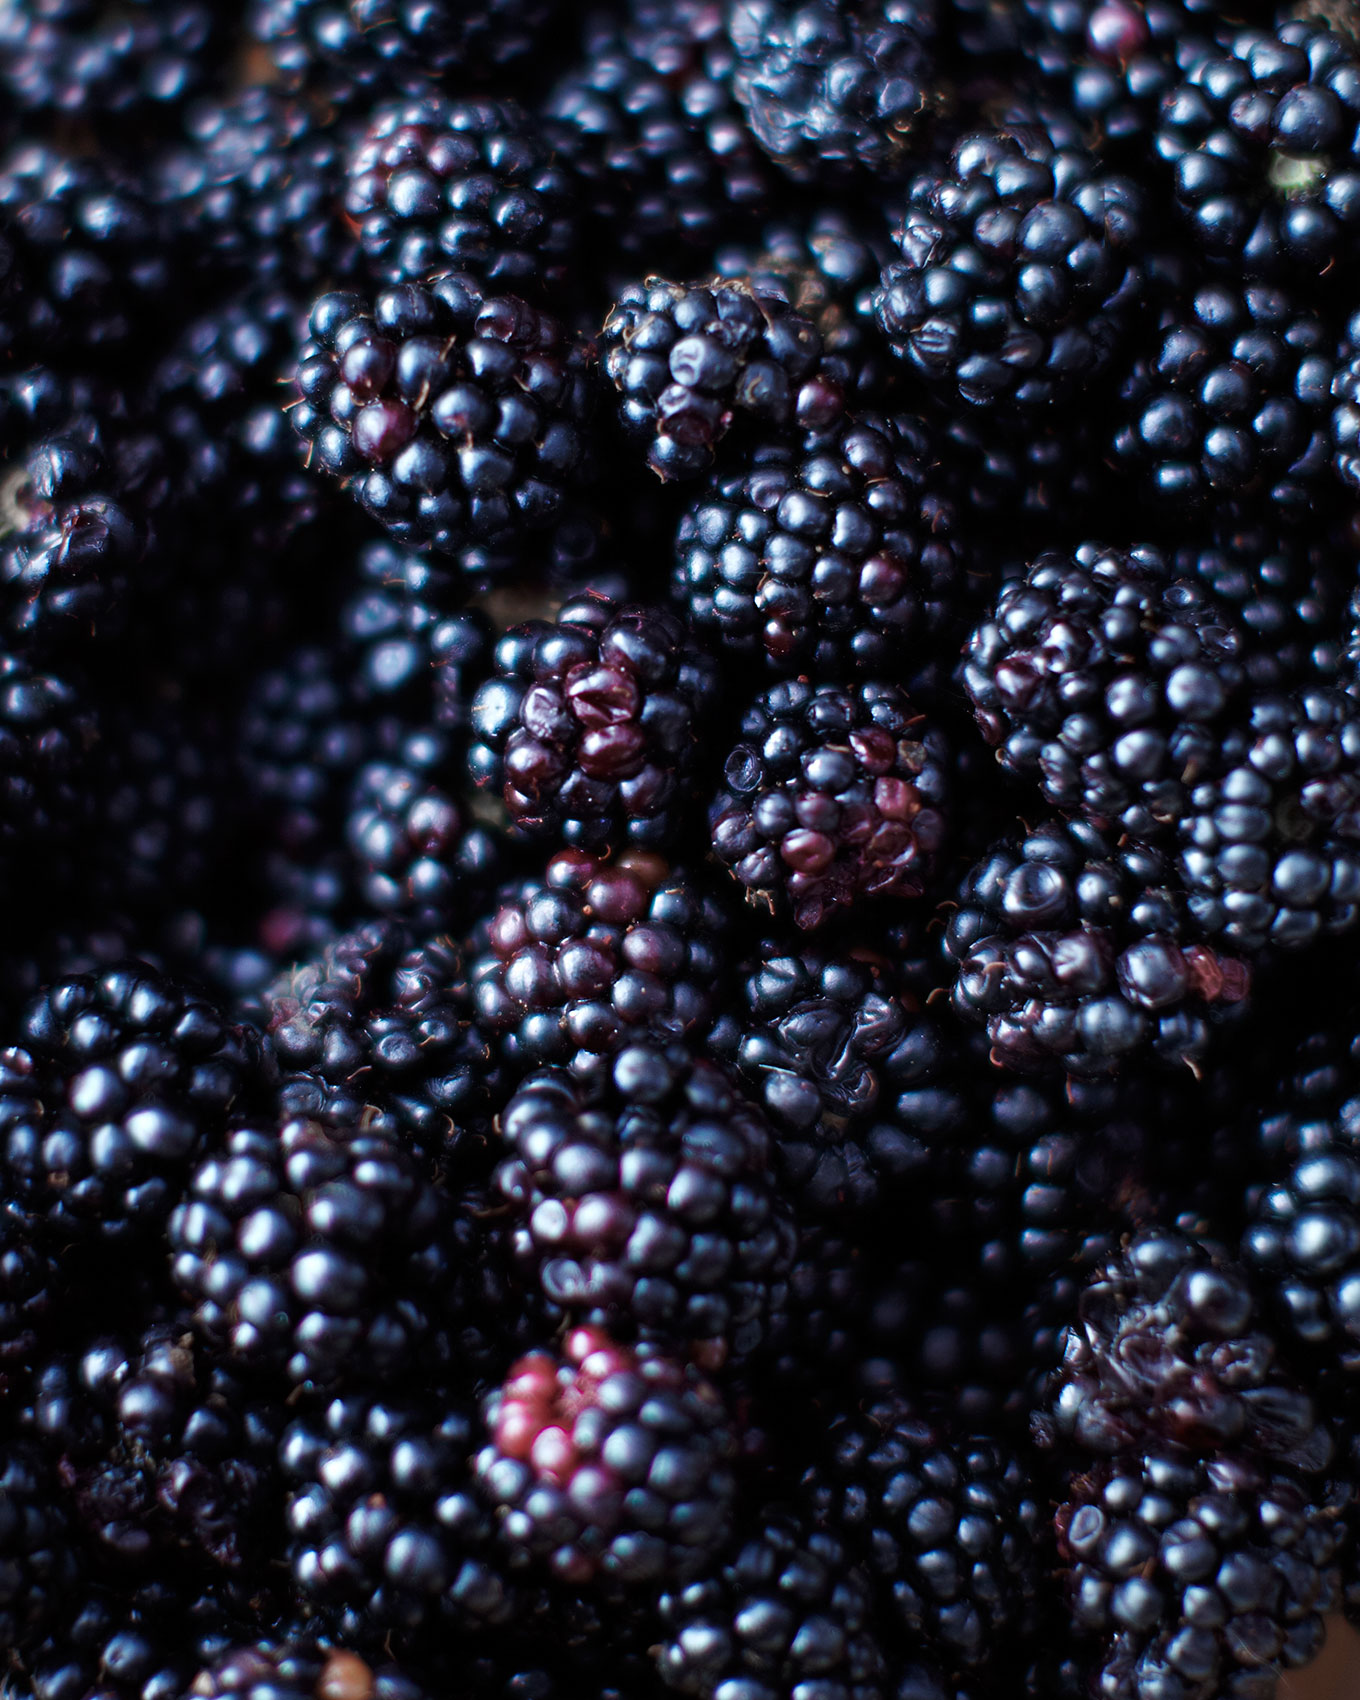 Del129_AL_Location_Blackberries_01